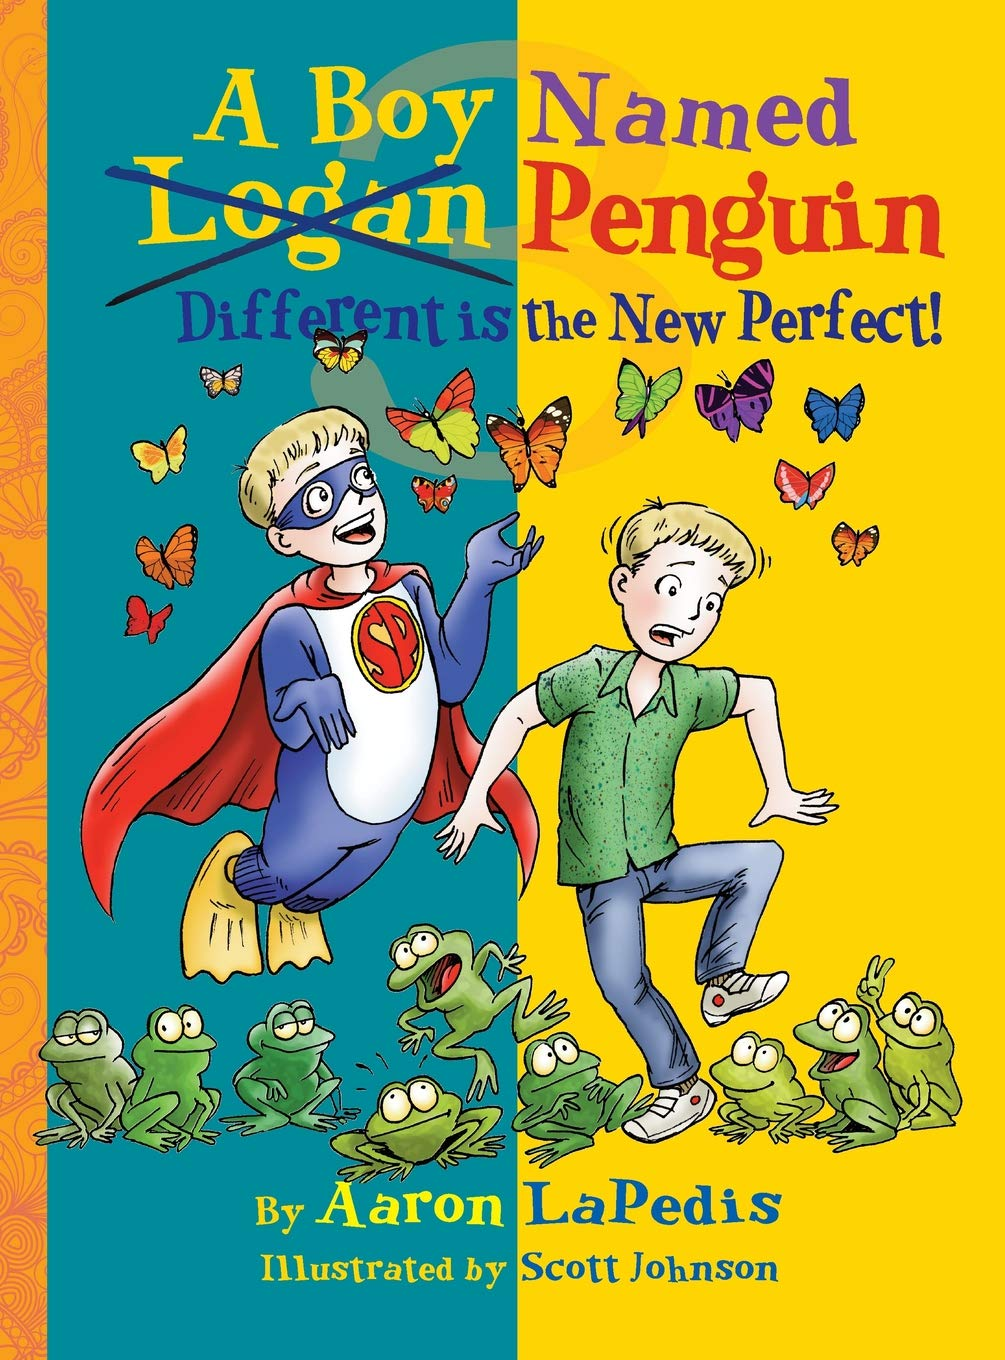 A Boy Named Penguin: Different is the New Perfect